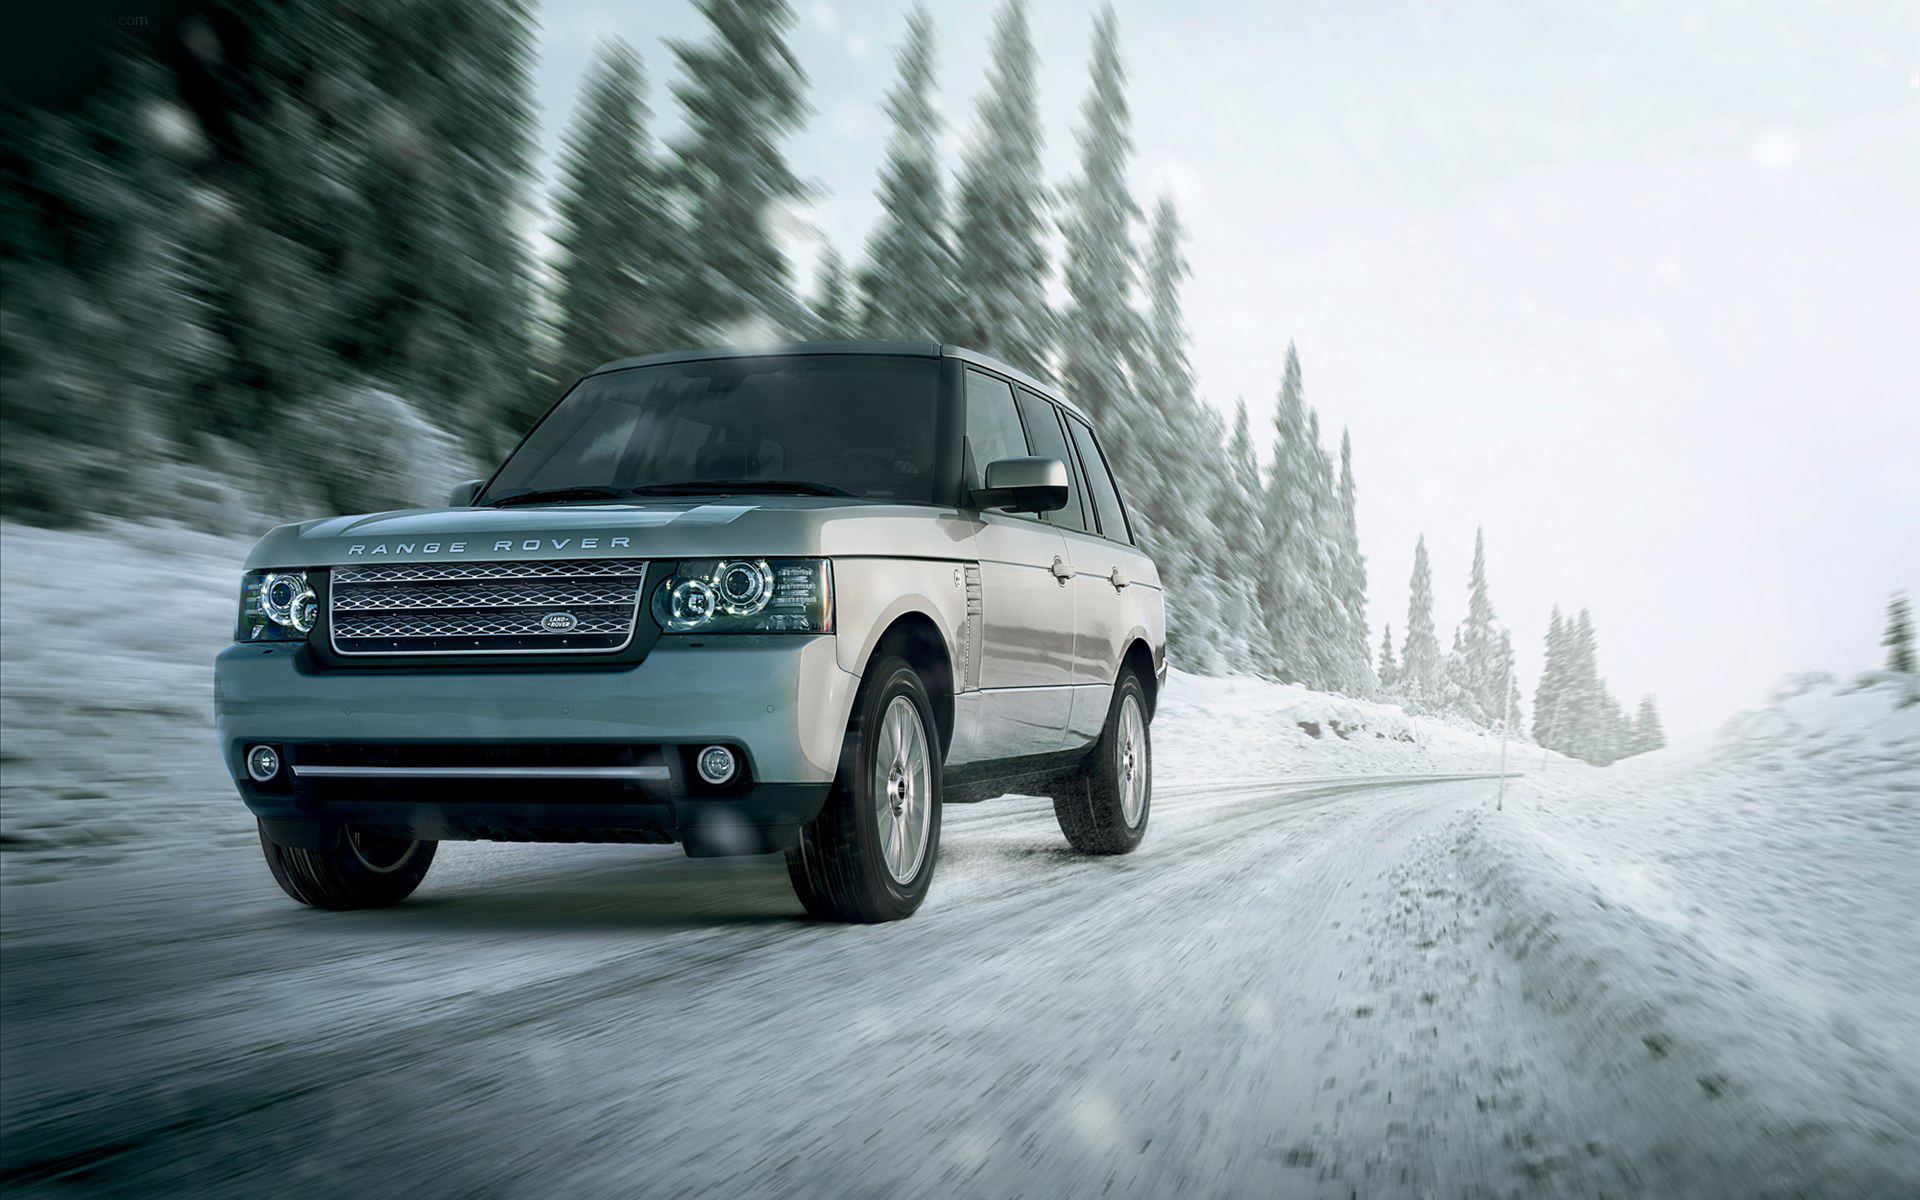 range rover westminster 2012 wide